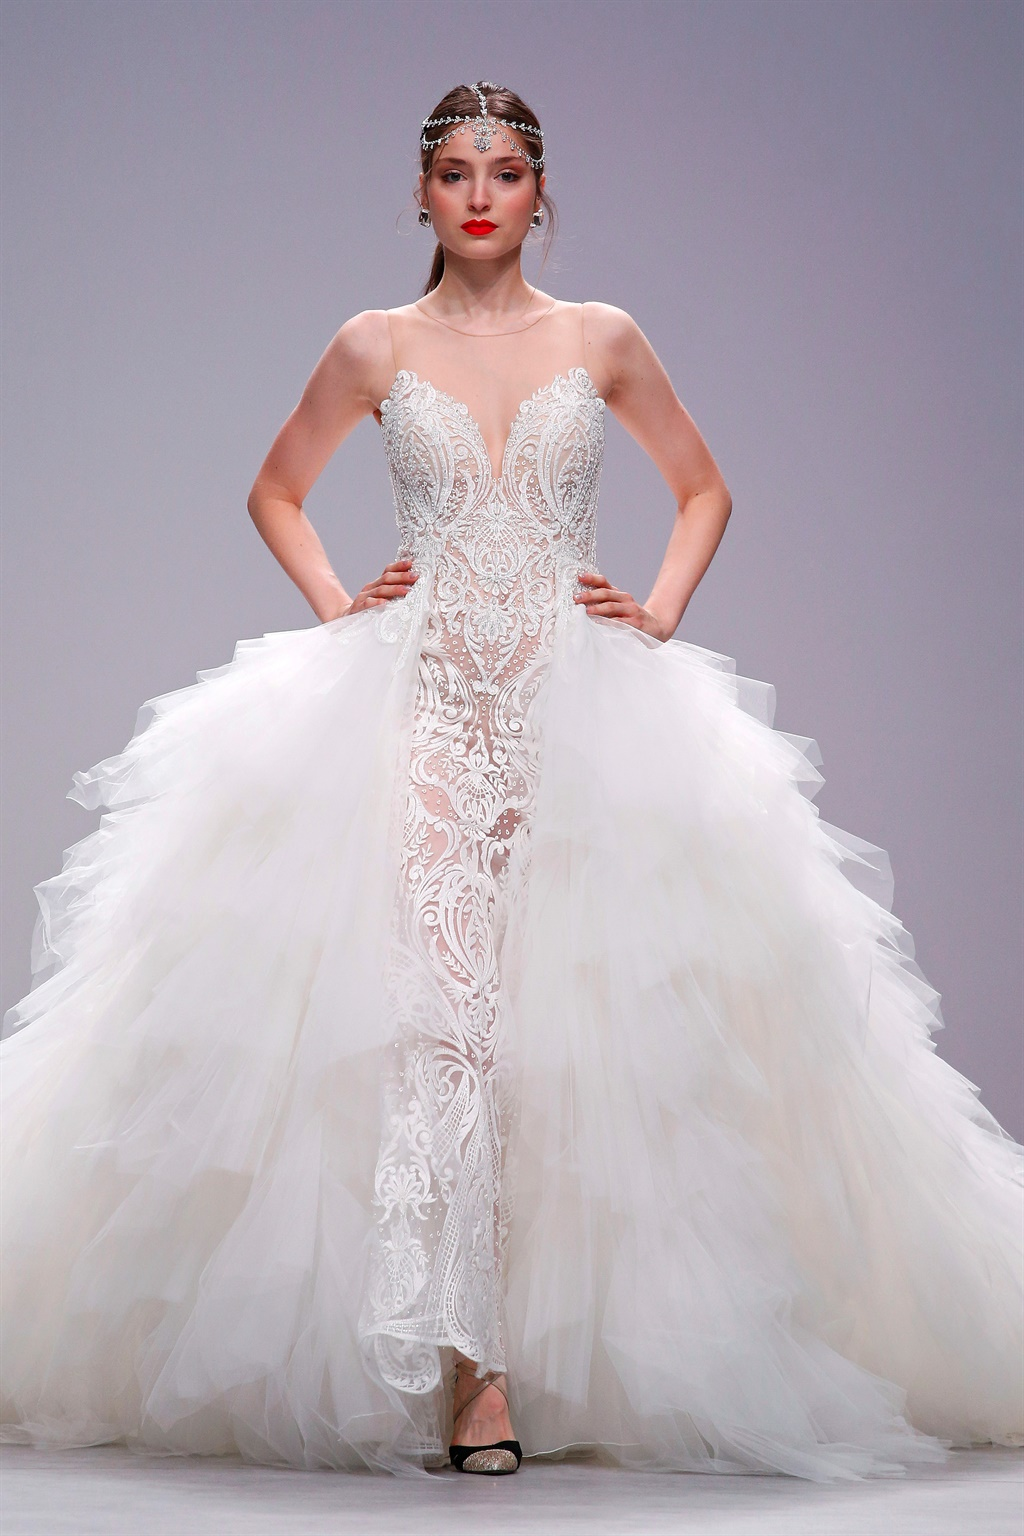 Here are 10 nude wedding dresses straight form the